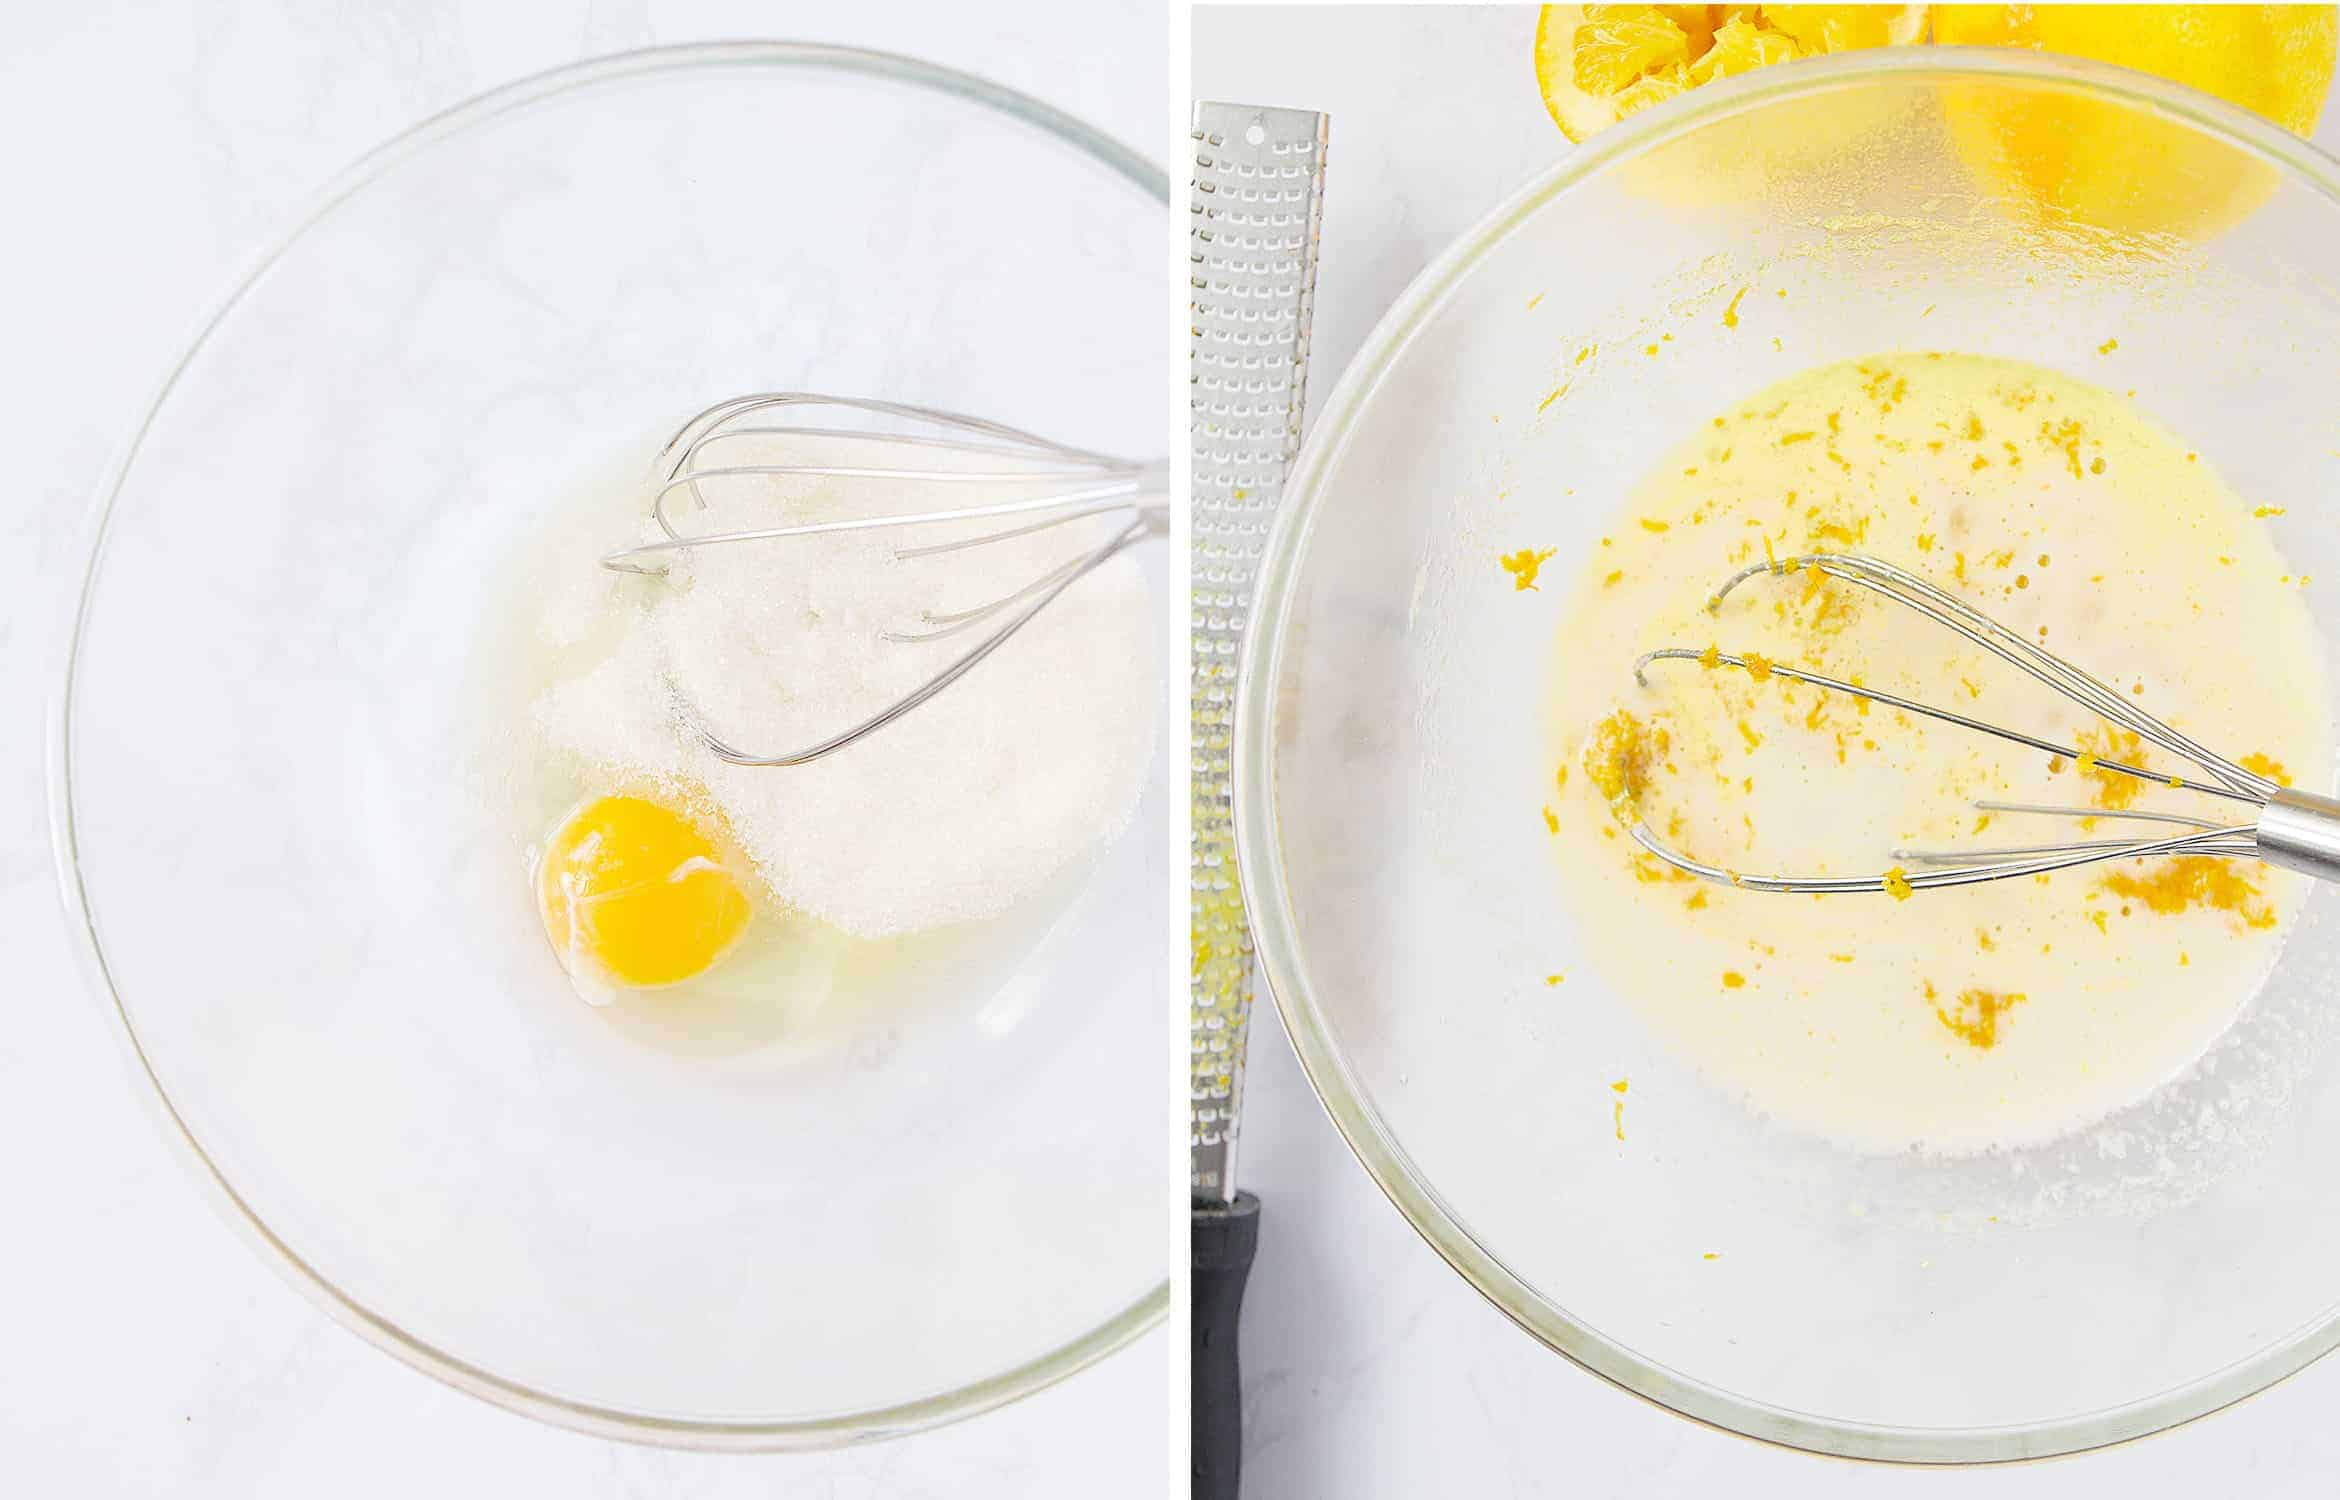 Mix egg and sugar, then add oil, vanilla, orange zest and juice.